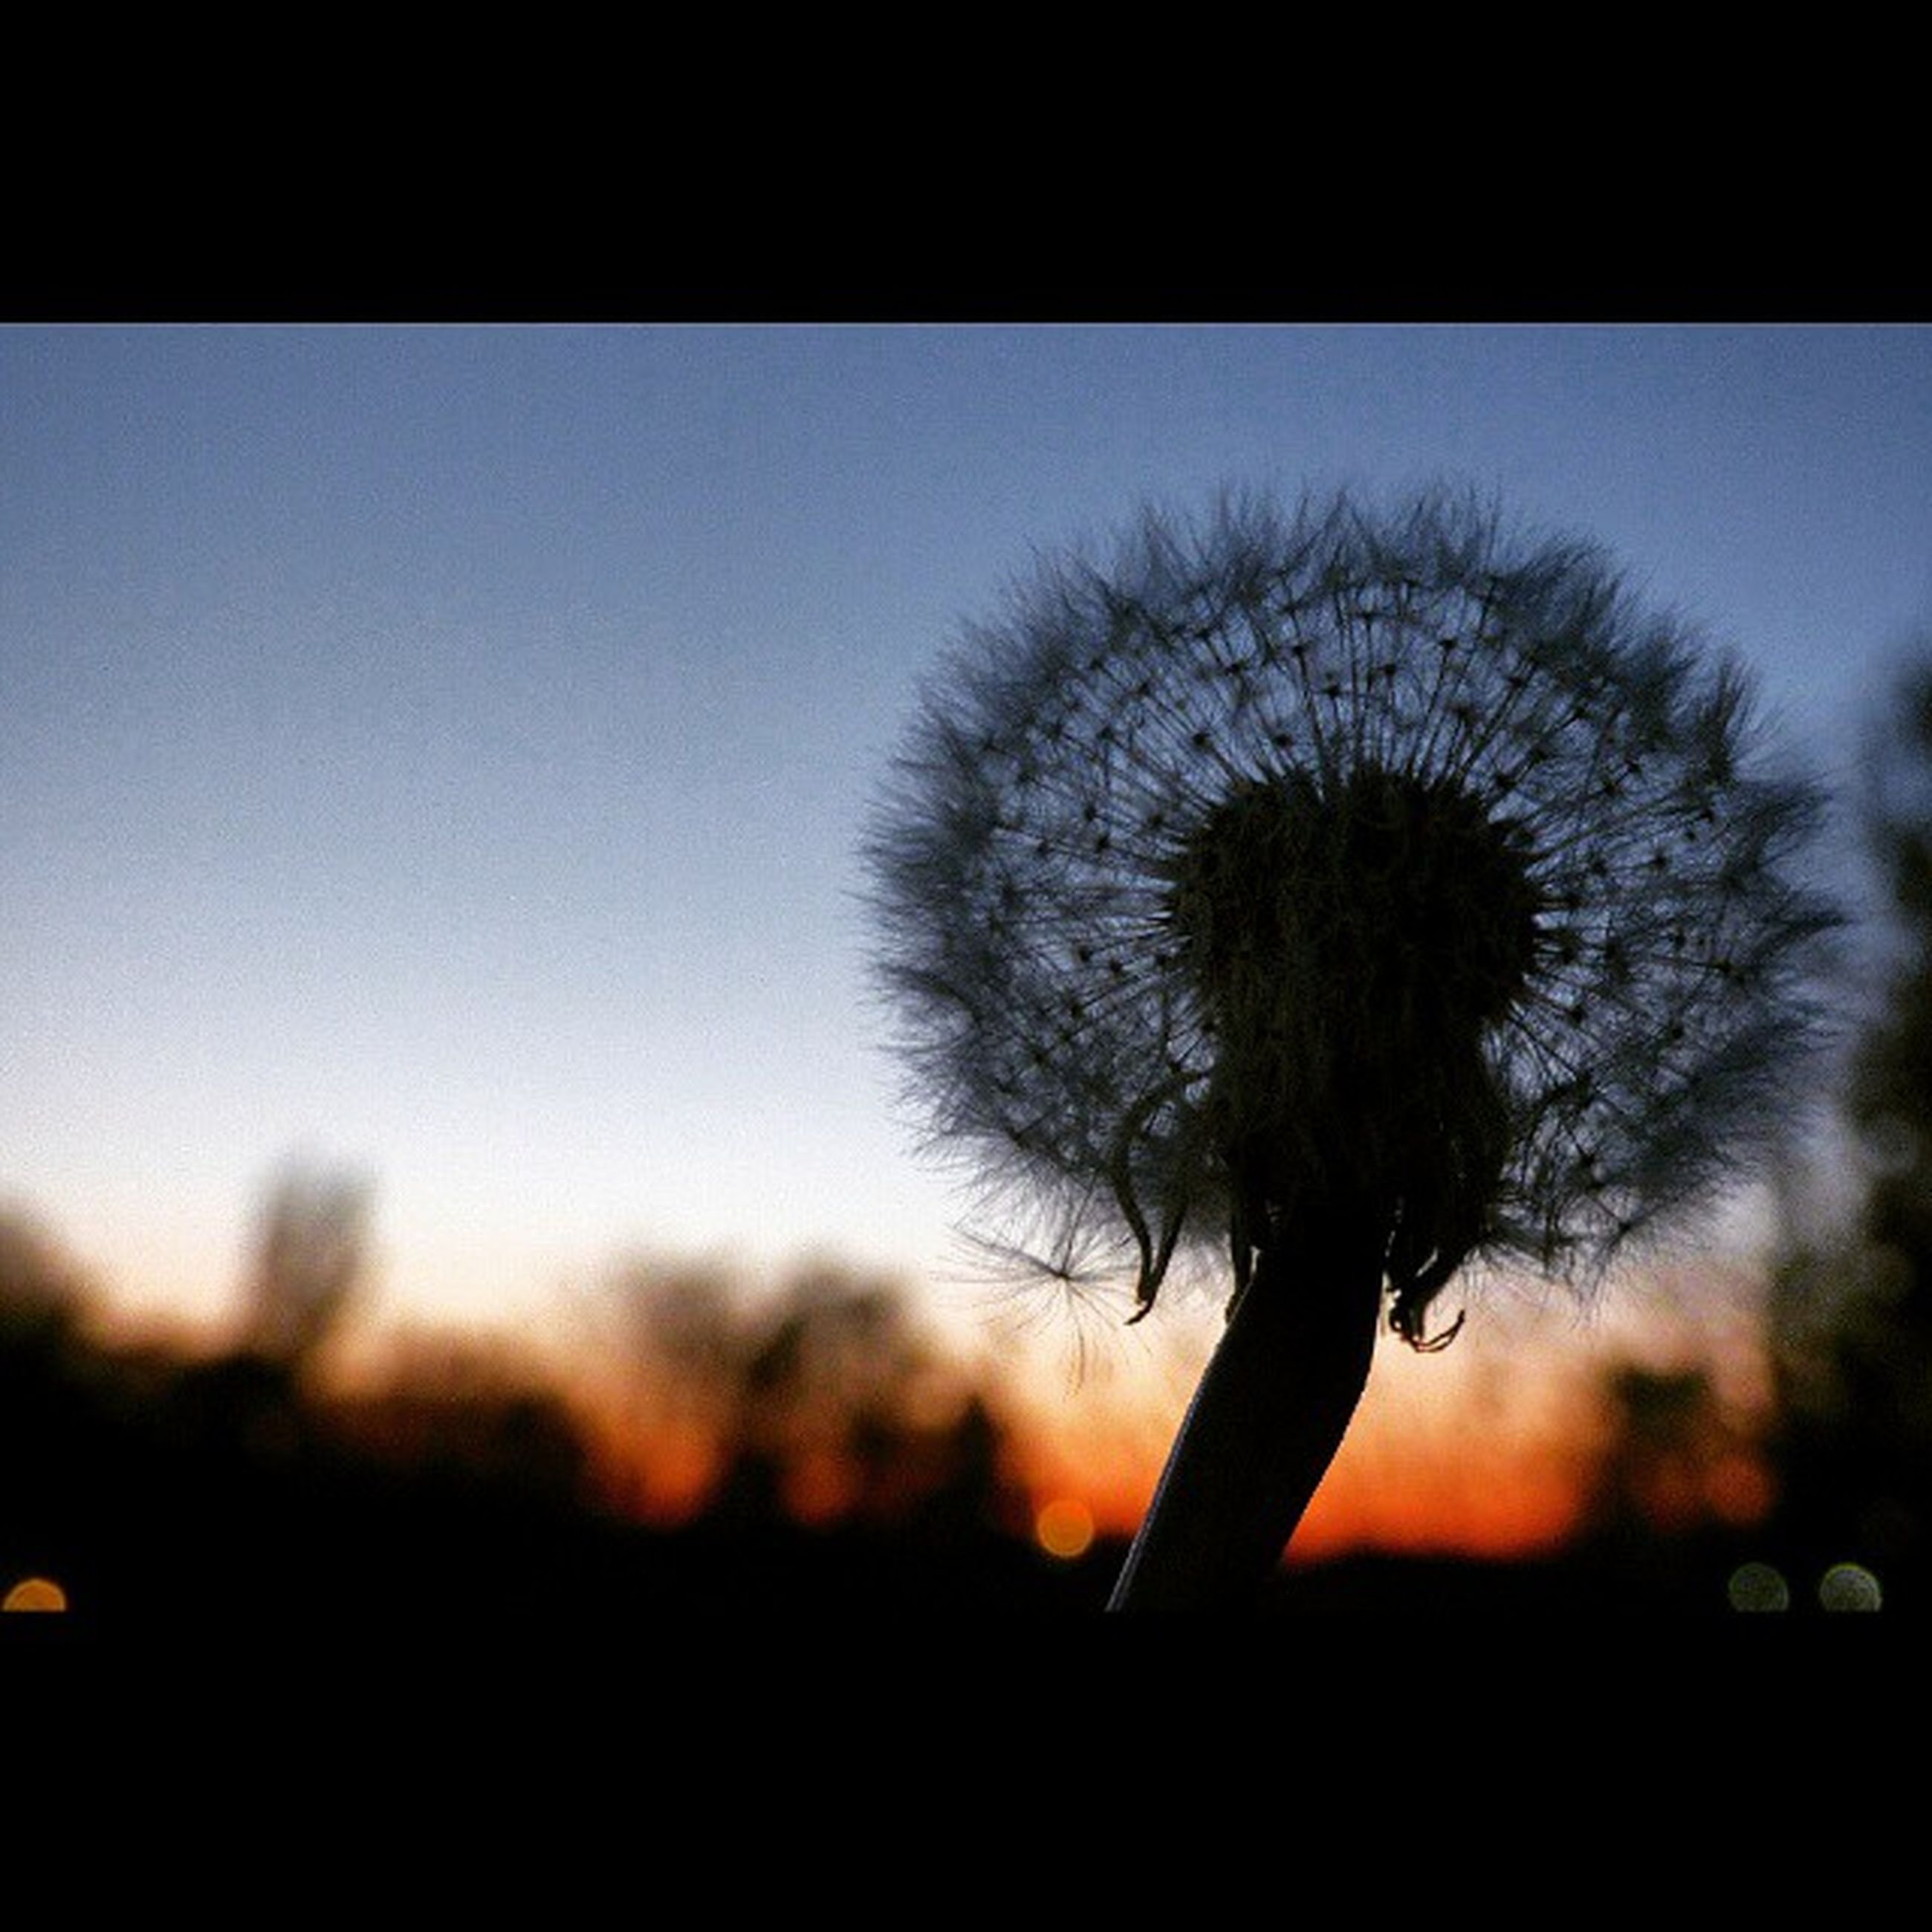 flower, growth, dandelion, fragility, beauty in nature, nature, focus on foreground, close-up, freshness, stem, silhouette, flower head, plant, sunset, sky, clear sky, wildflower, selective focus, outdoors, single flower